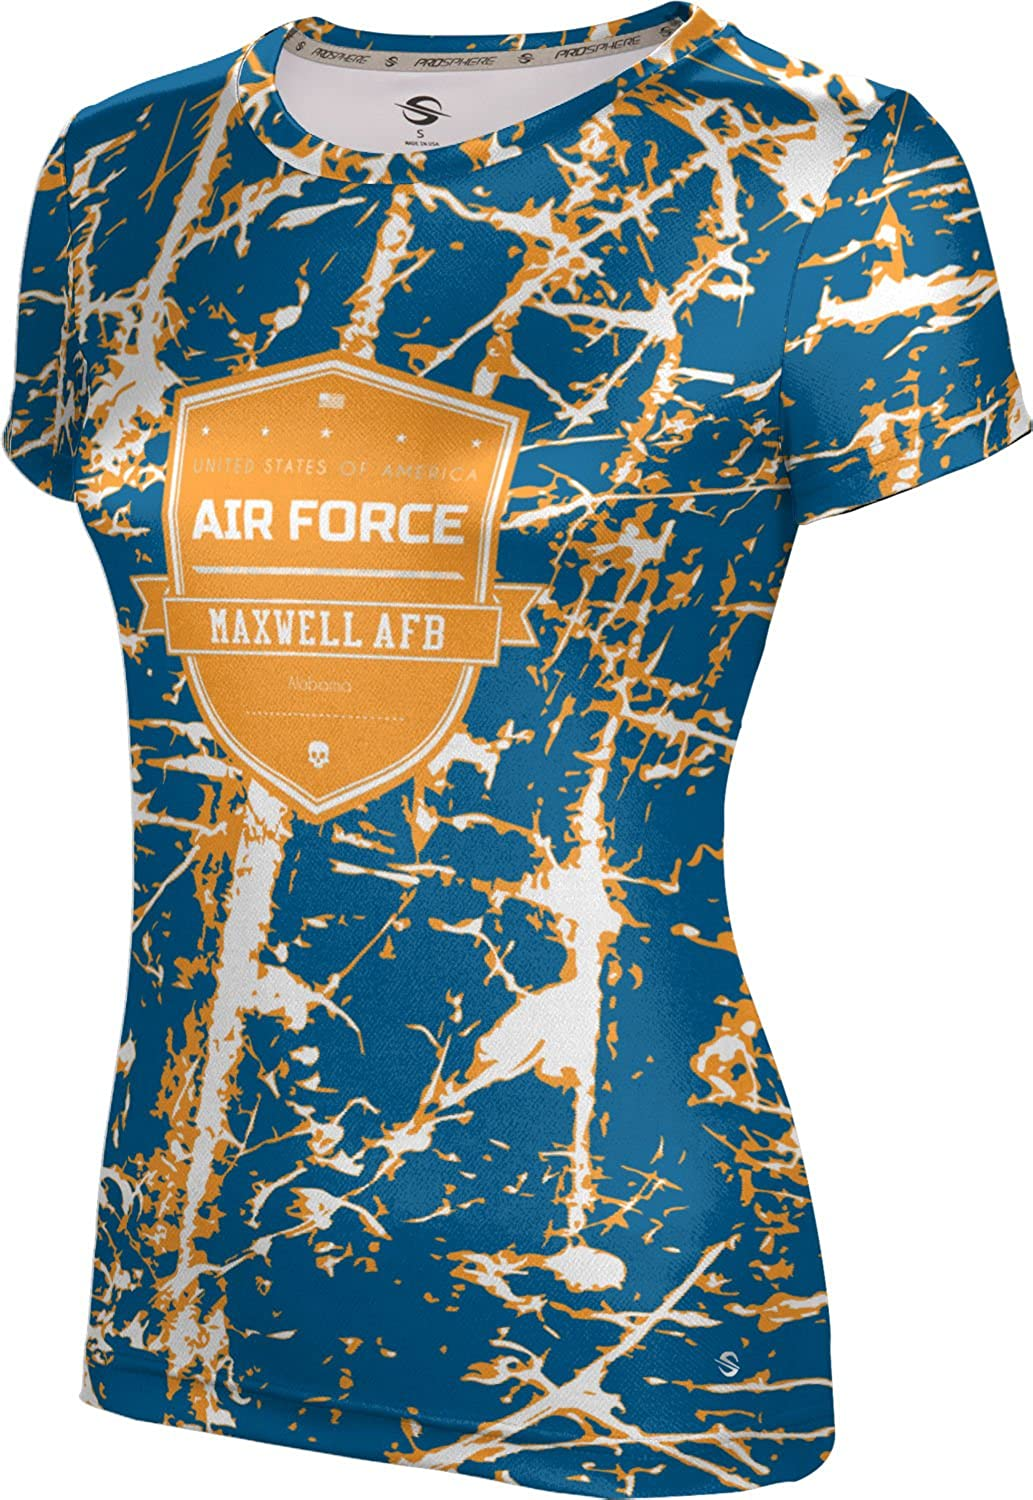 ProSphere Women's Maxwell AFB Military Distressed Tech Tee